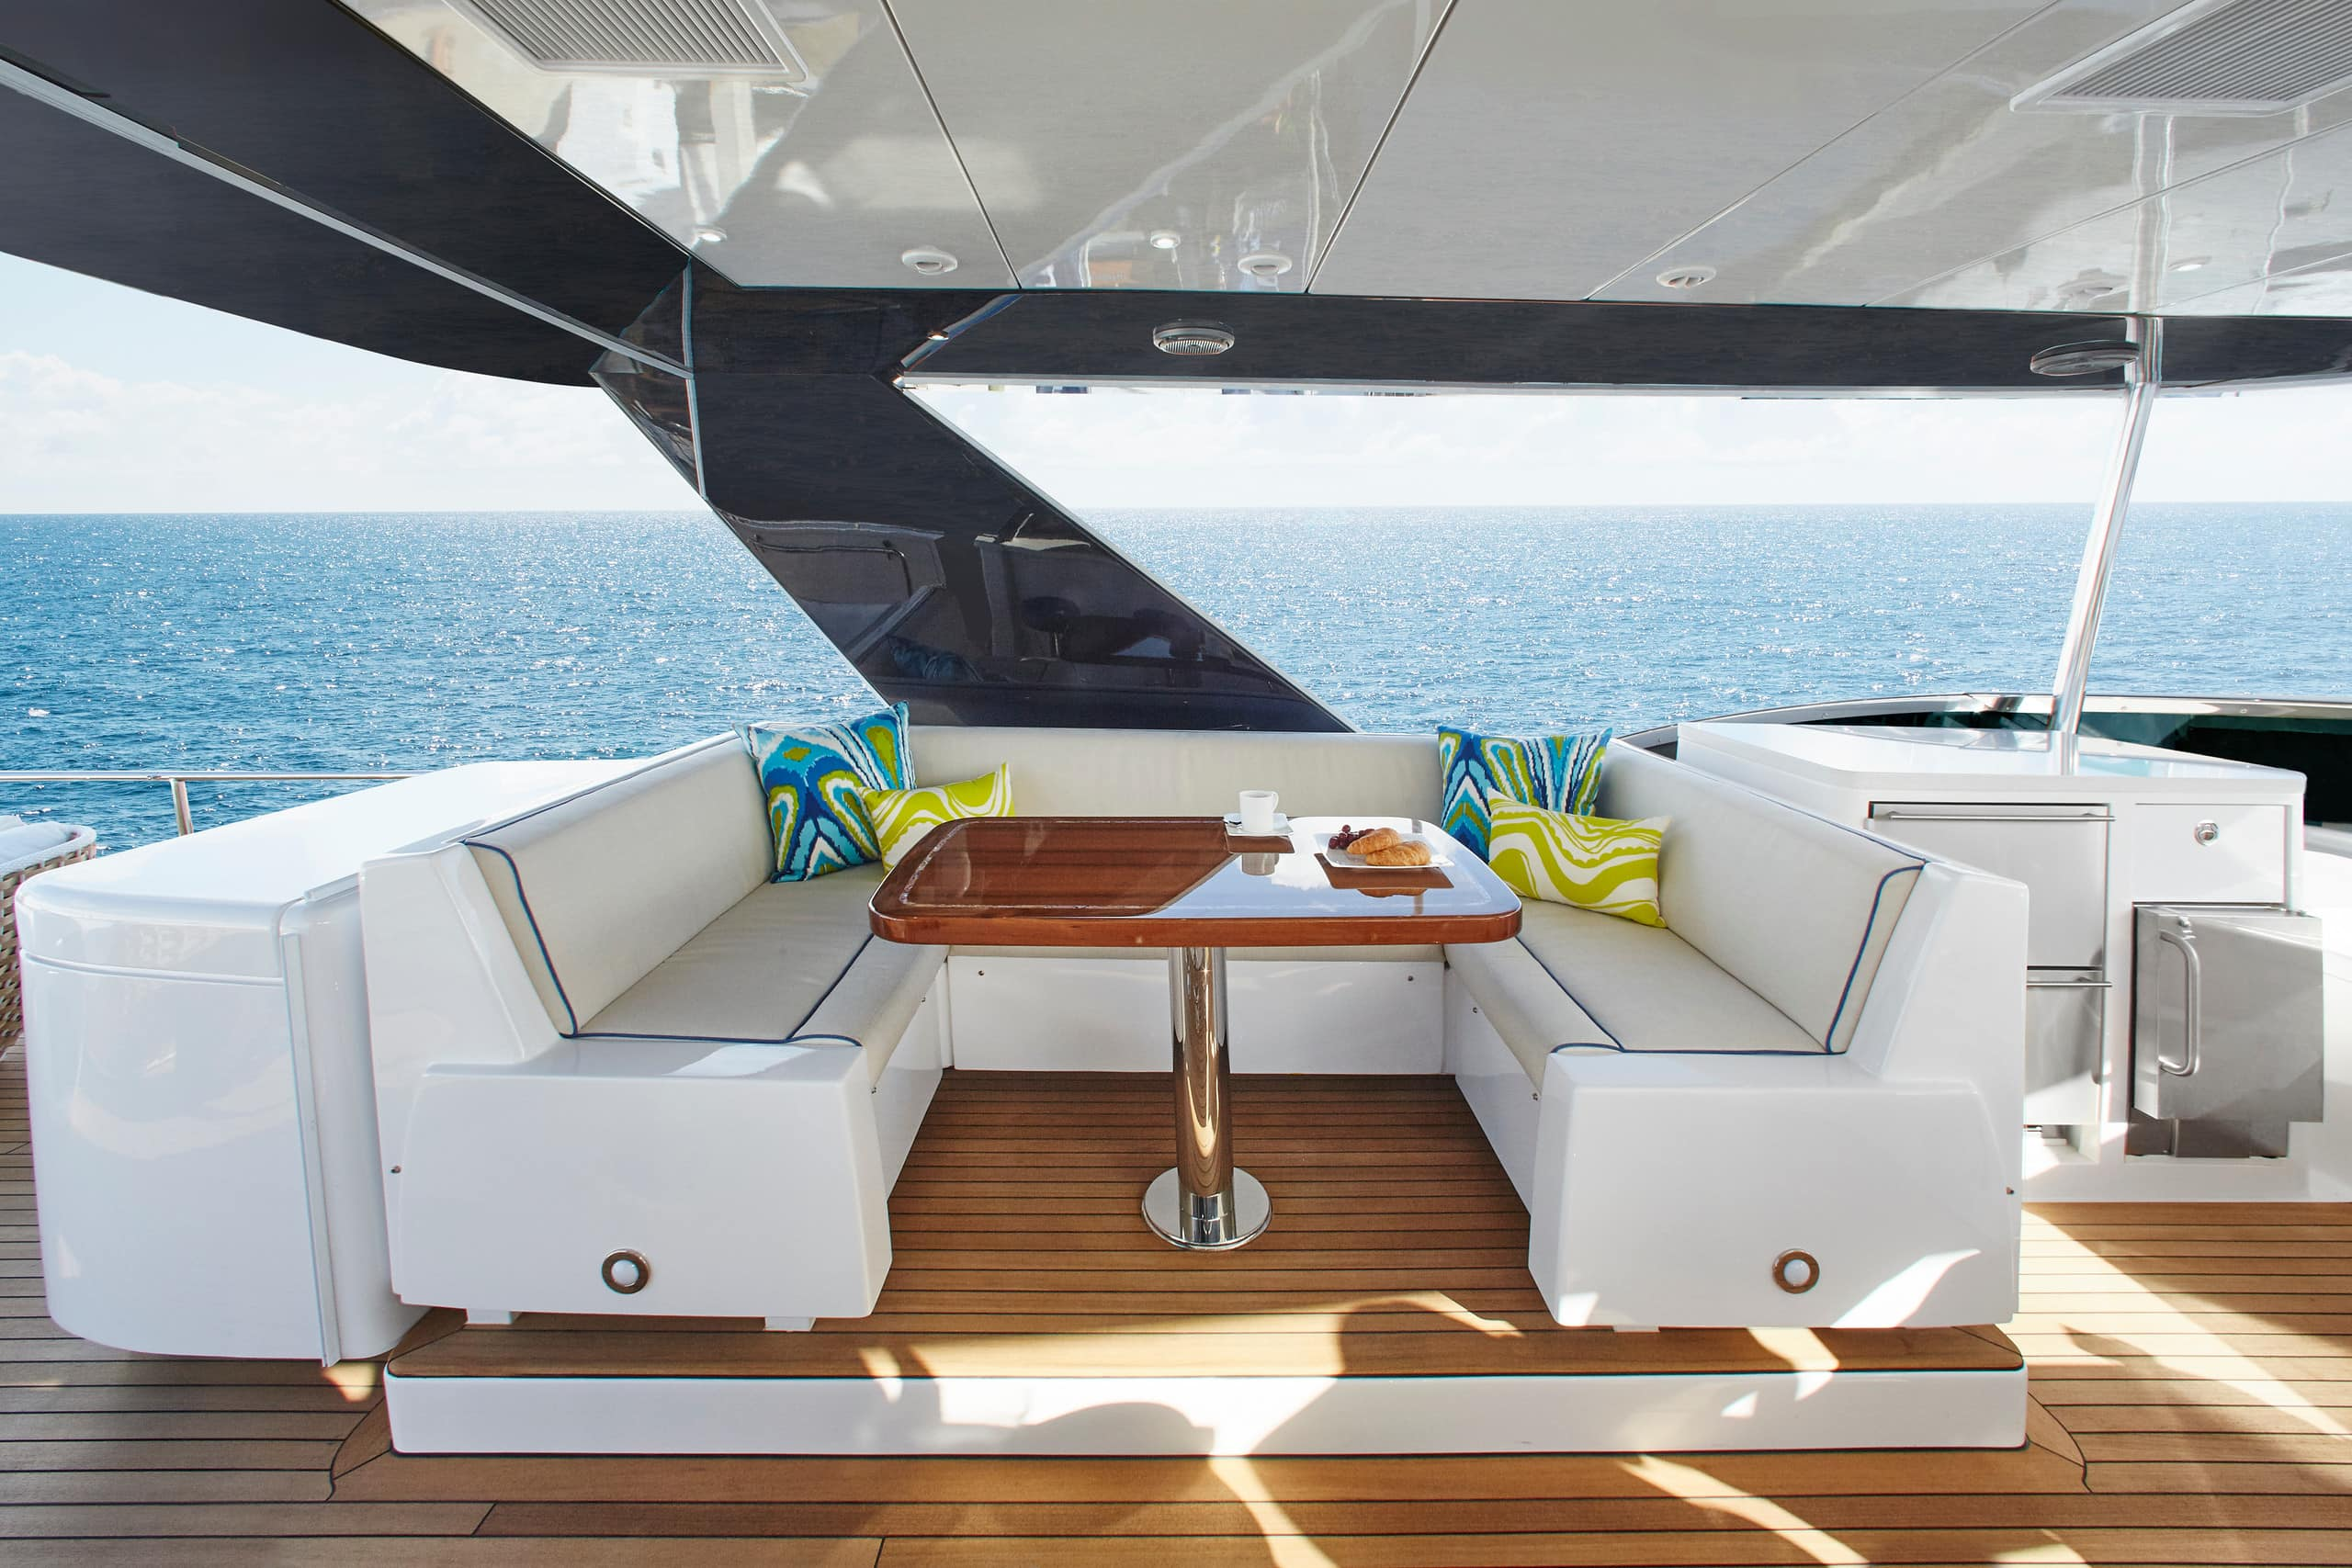 Hatteras M75 Panacera Flybridge Table